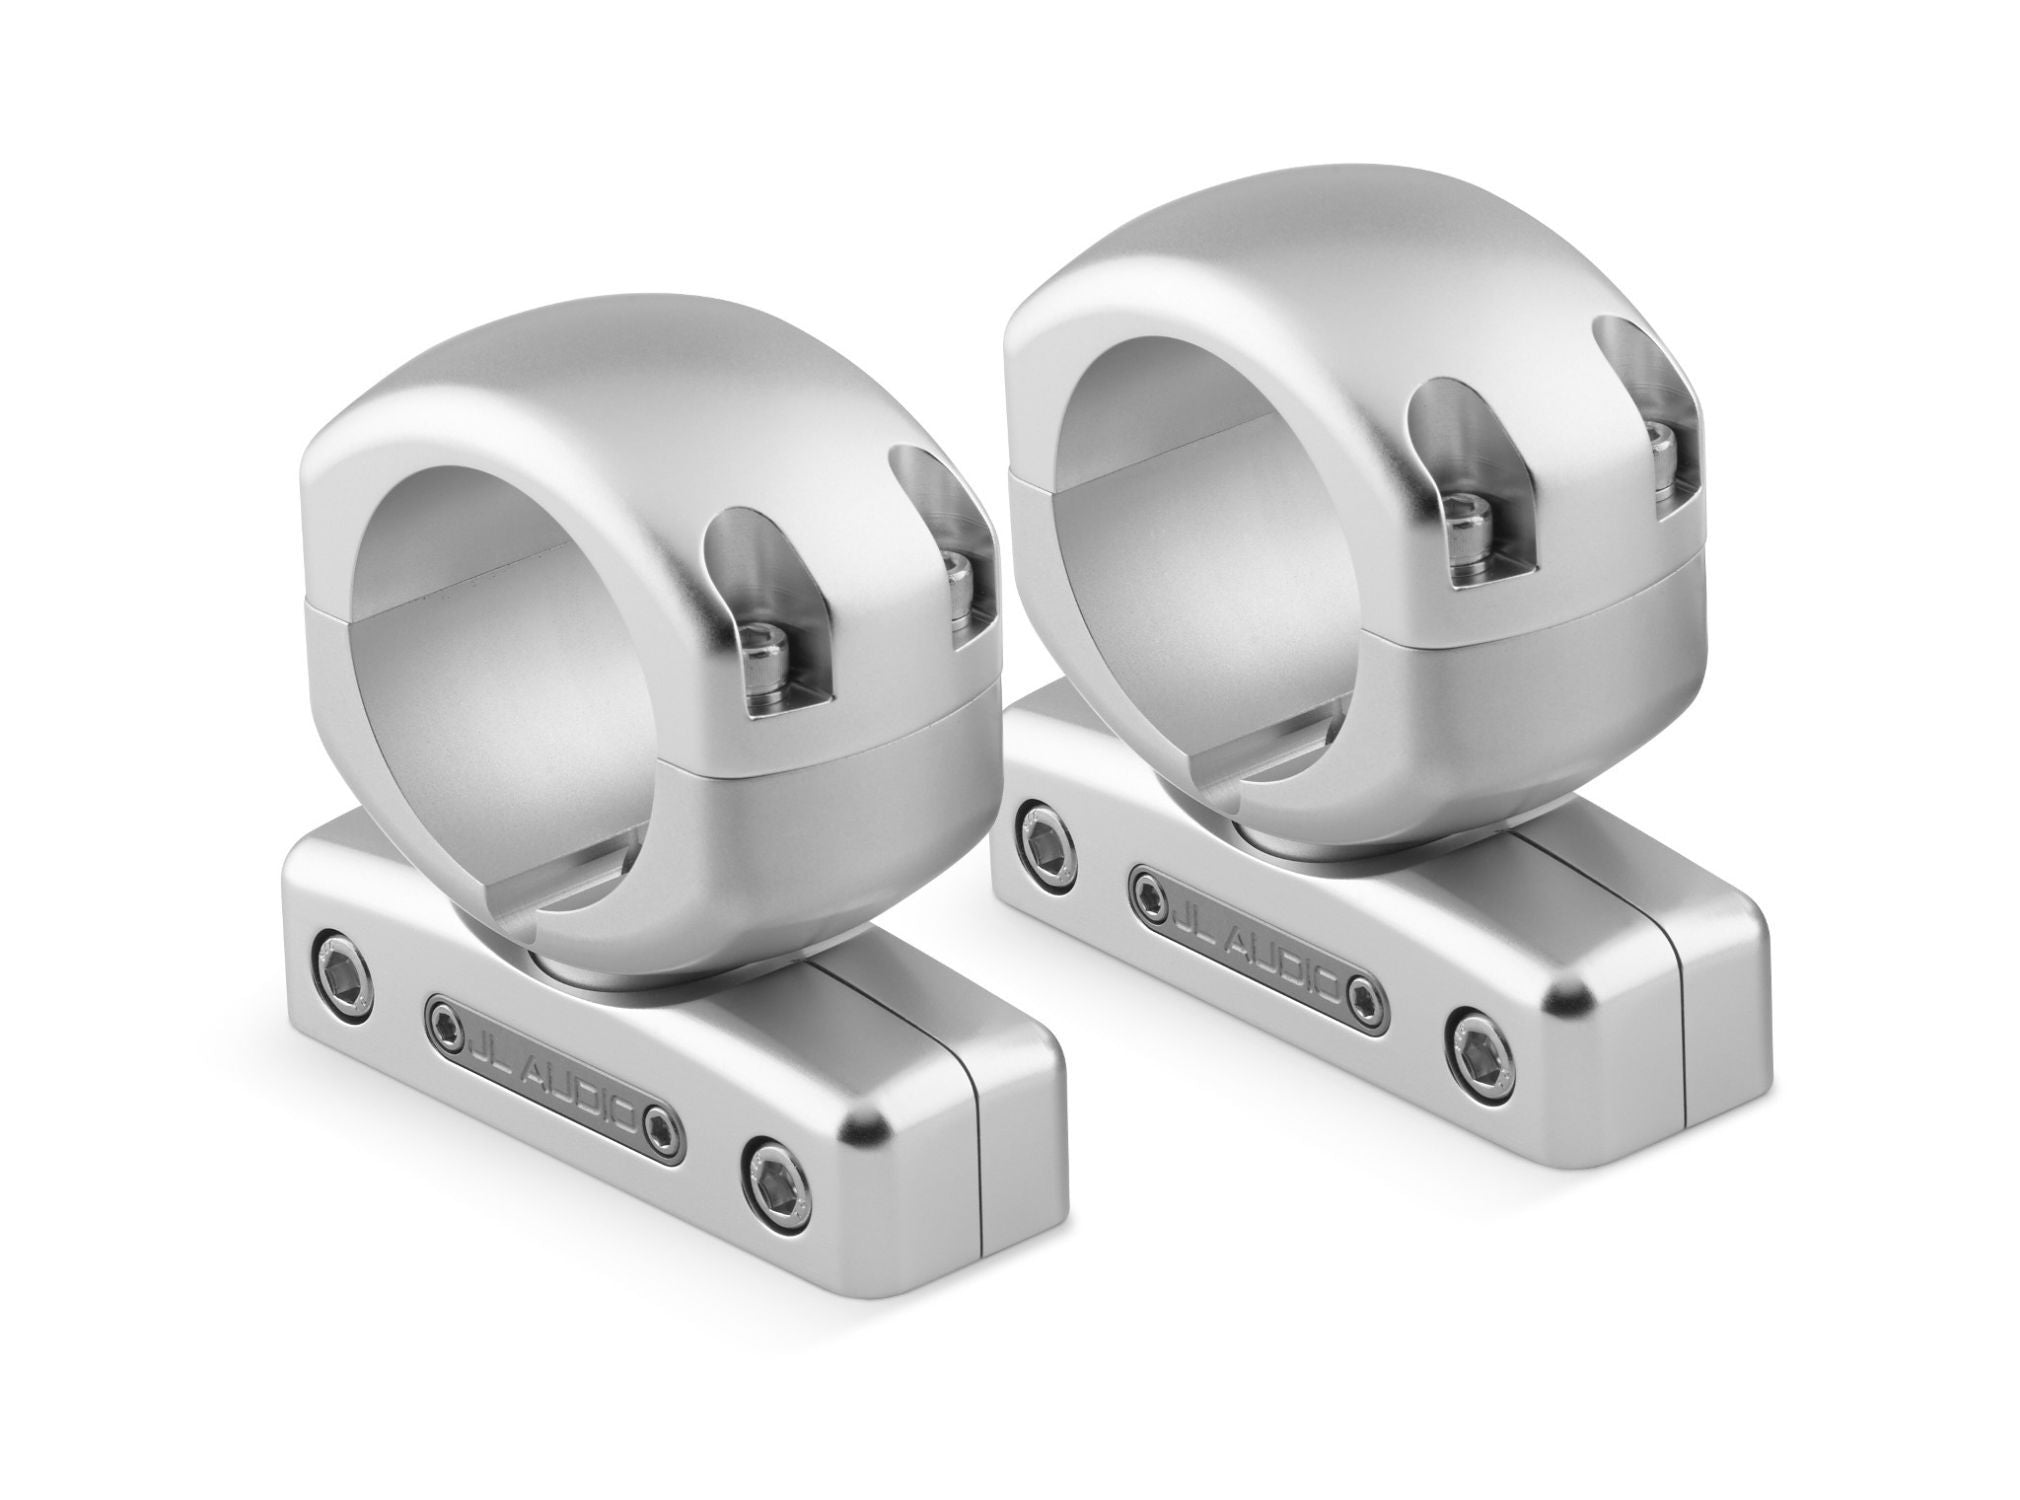 M-SWMCPv3-2-375 Swivel Mounting Clamp Pair